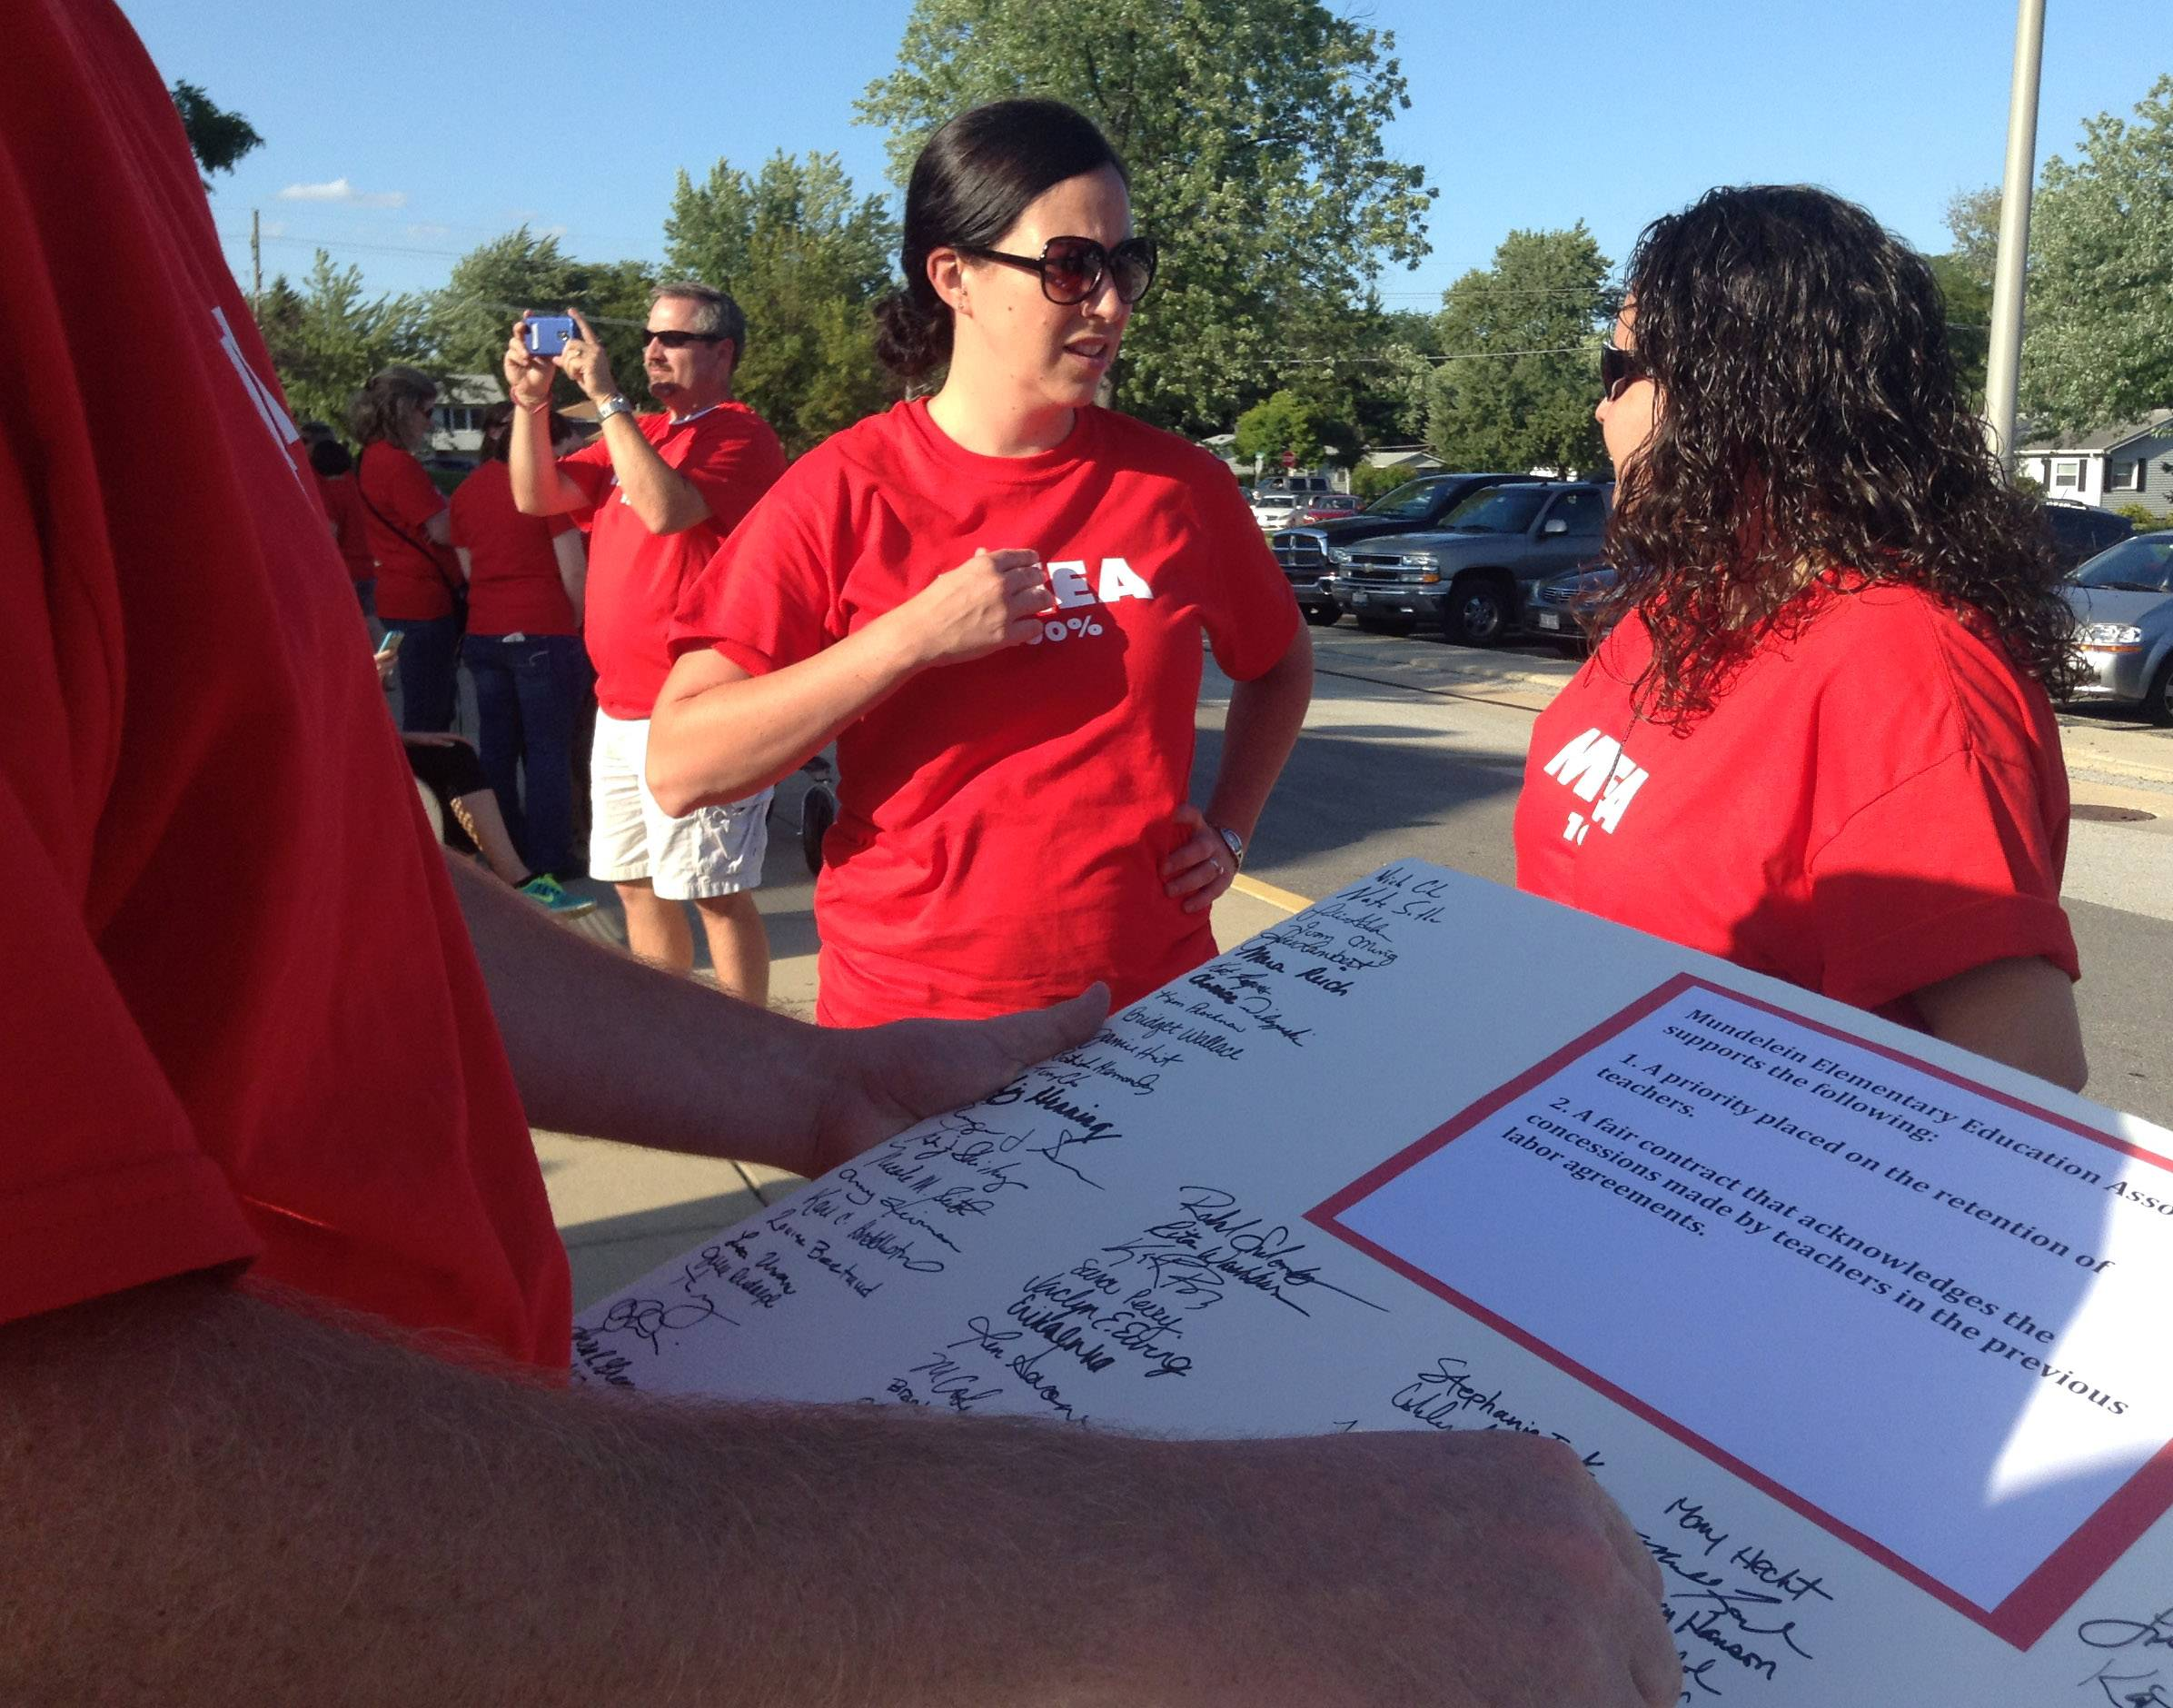 Mundelein Elementary District 75 teachers and supporters who rallied Wednesday evening presented district officials with a petition citing teacher retention and a fair contract as priorities.